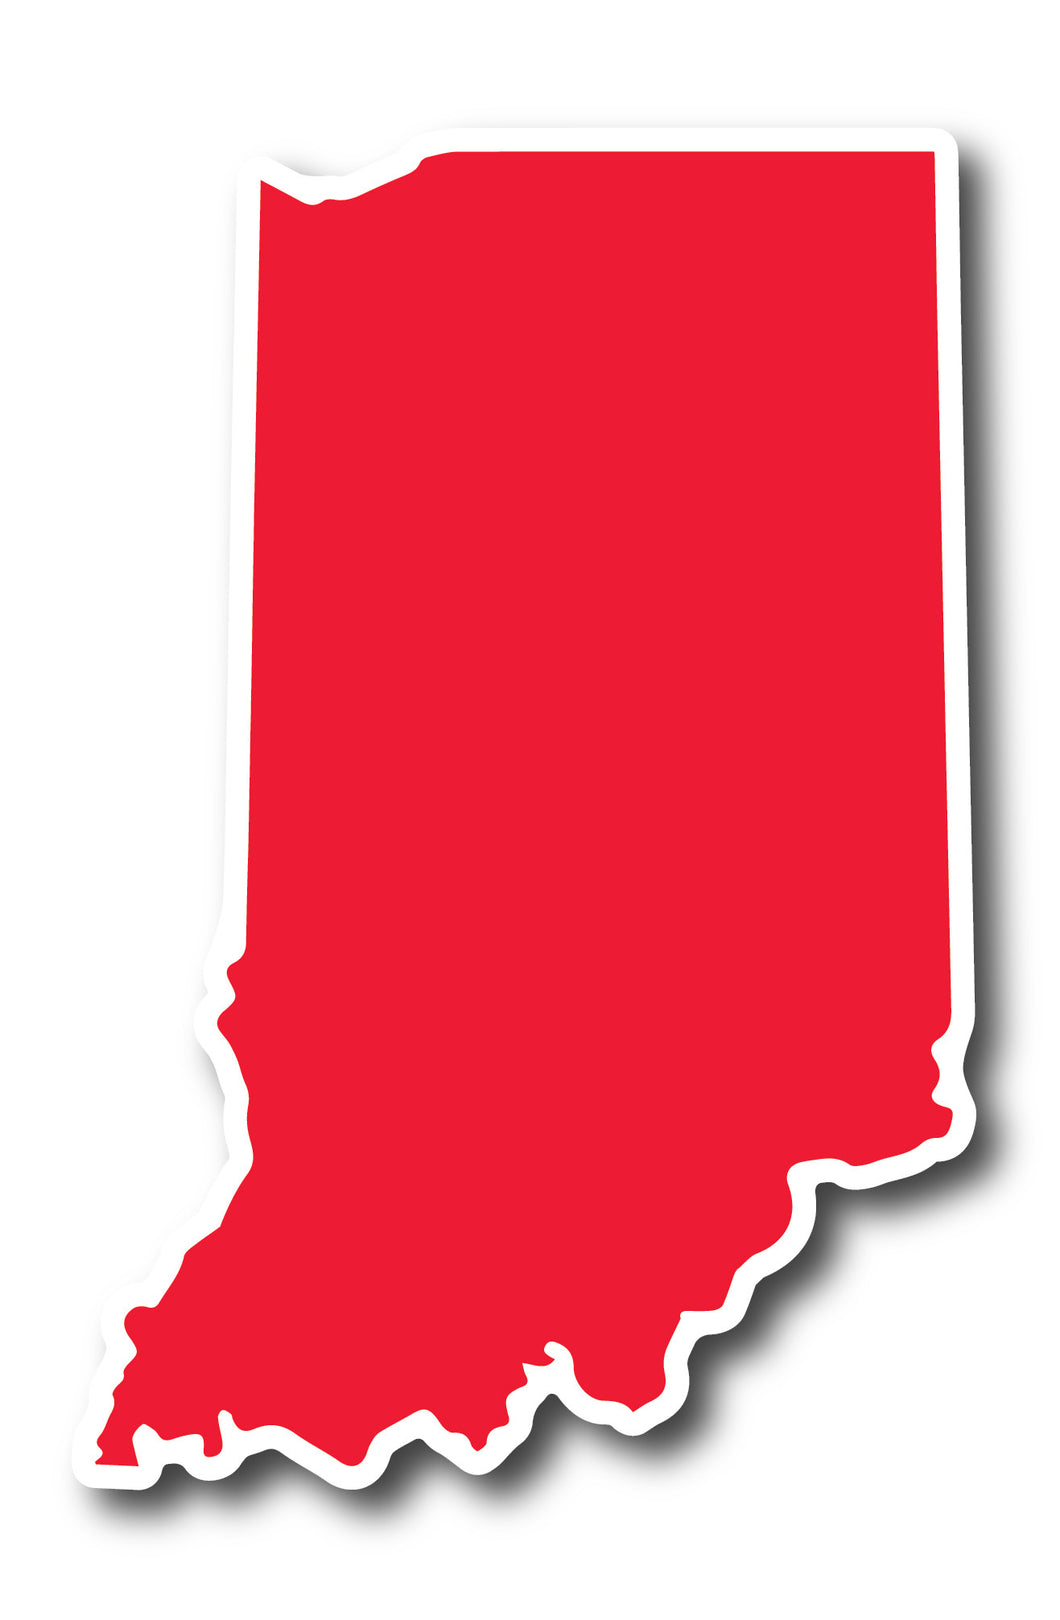 Red and White Indiana Sticker